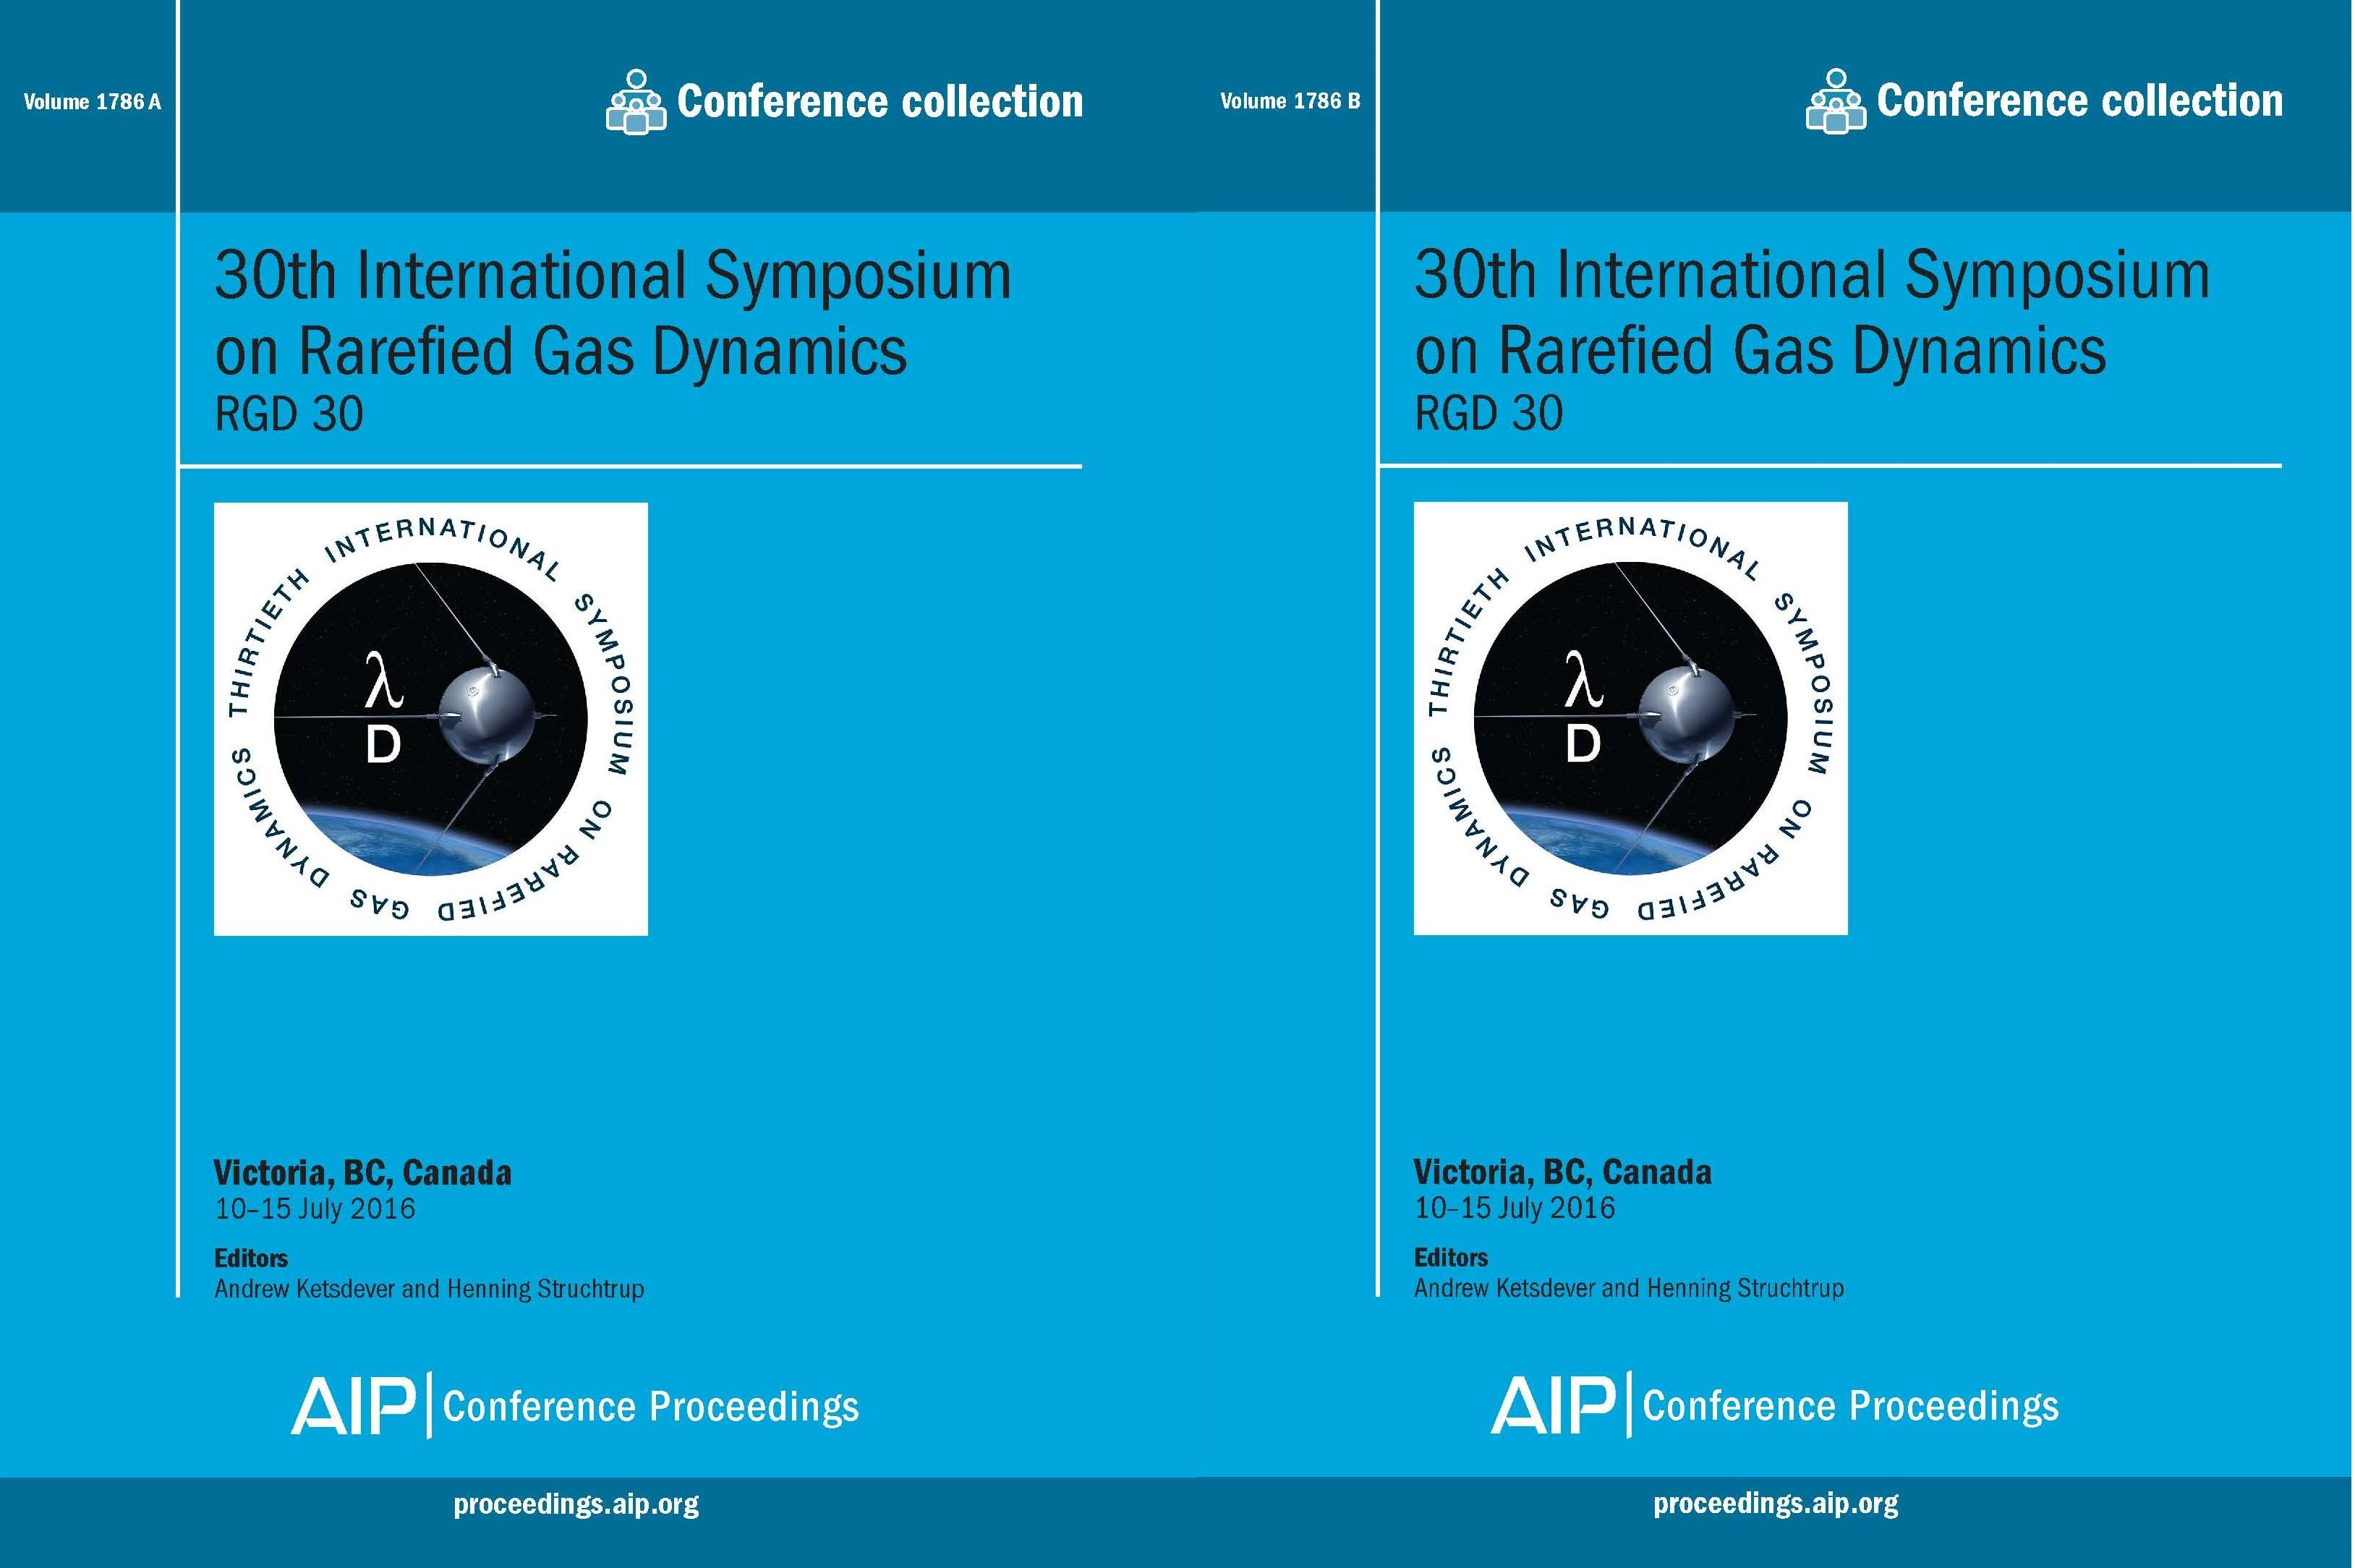 Volume 1786: 30th International Symposium on Rarefied Gas Dynamics